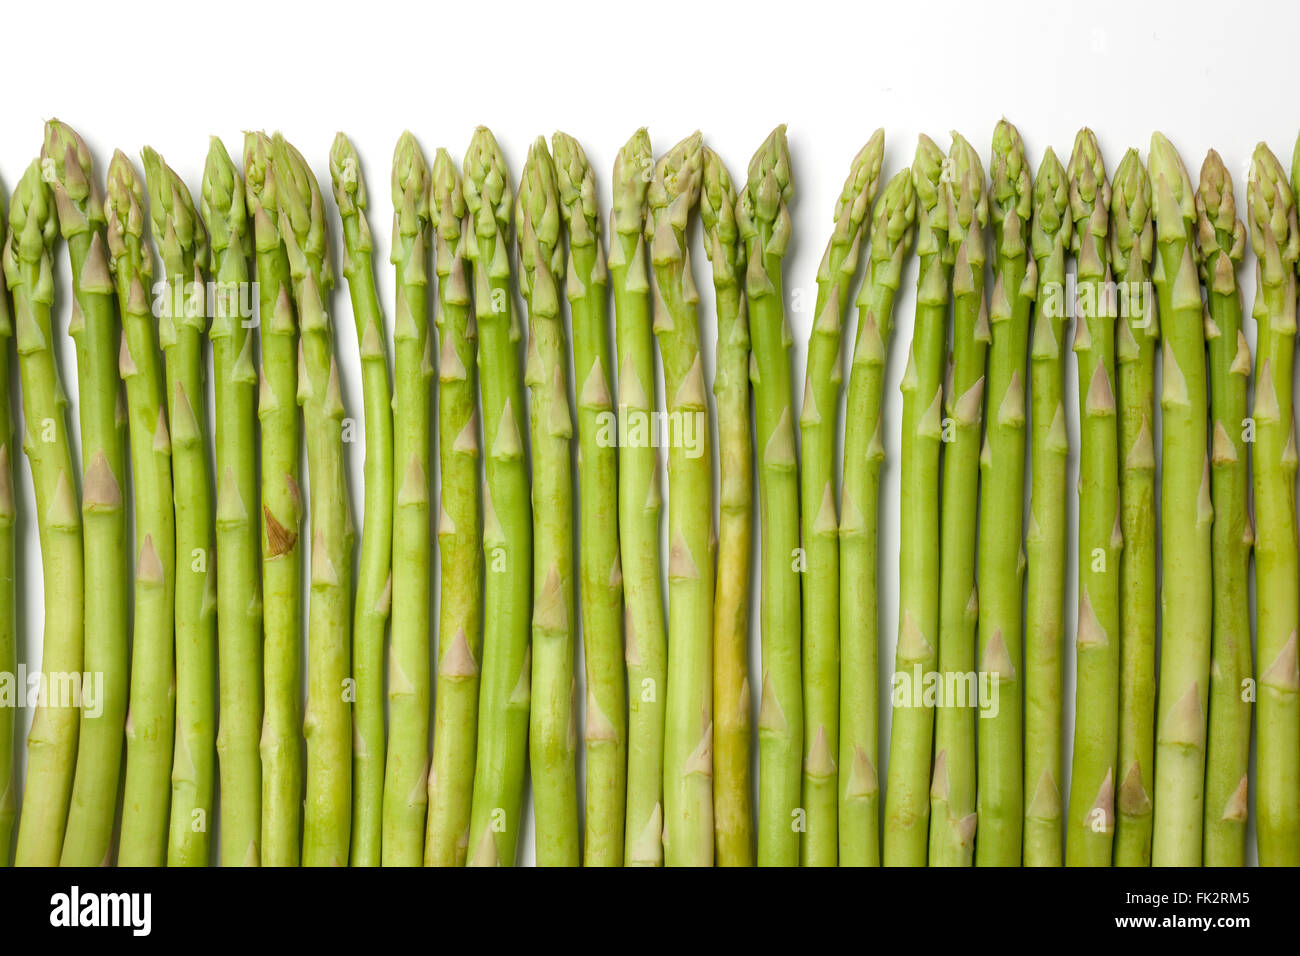 Healthy green fine asparagus tips on a row on white background - Stock Image